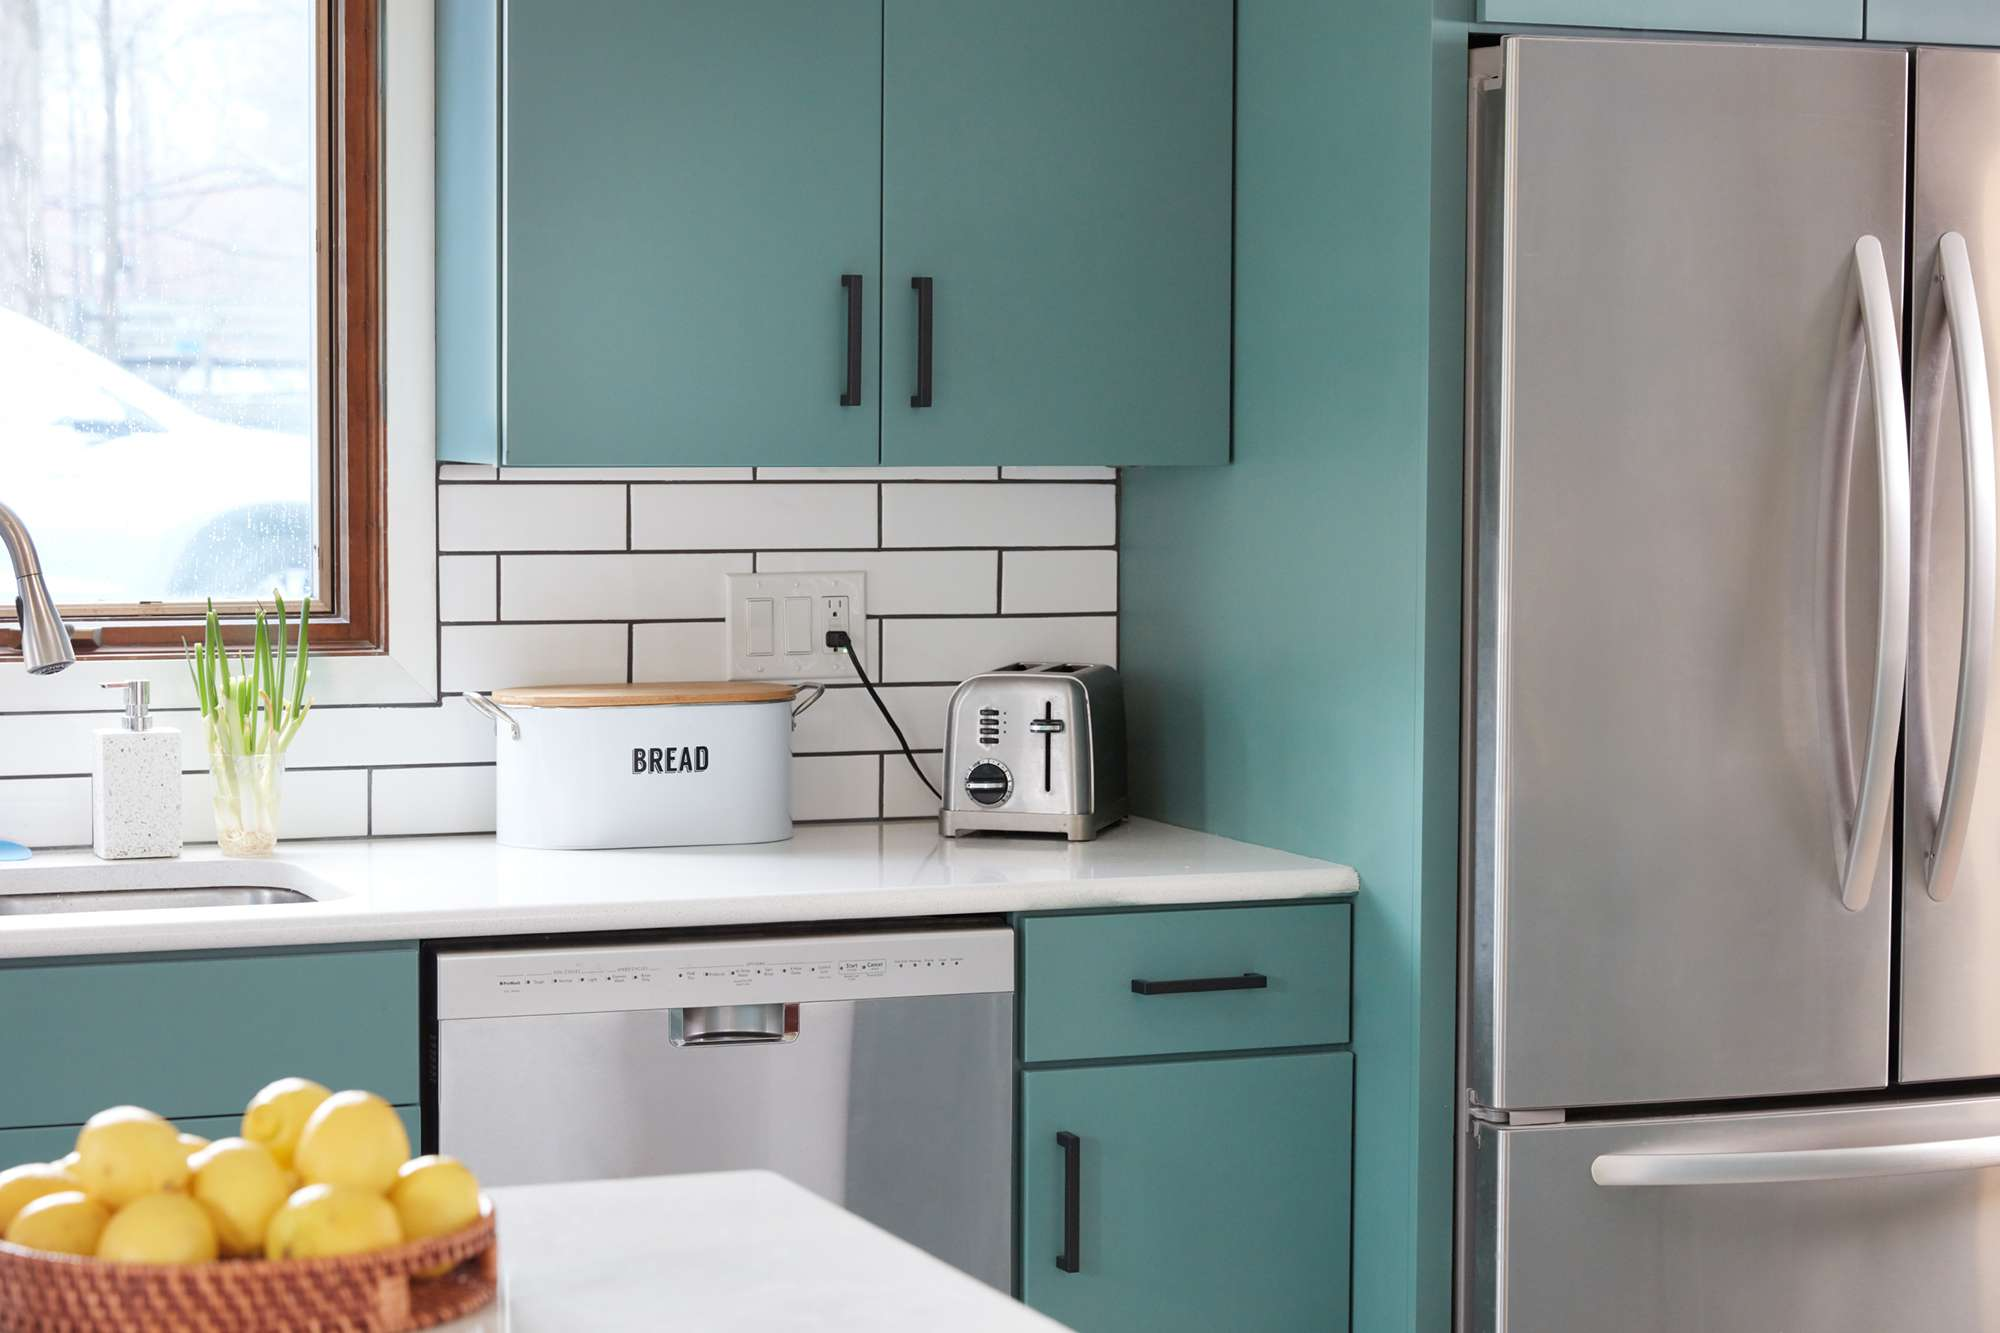 Stainless steel refrigerator and dishwasher appliances surrounded by mint green cabinets